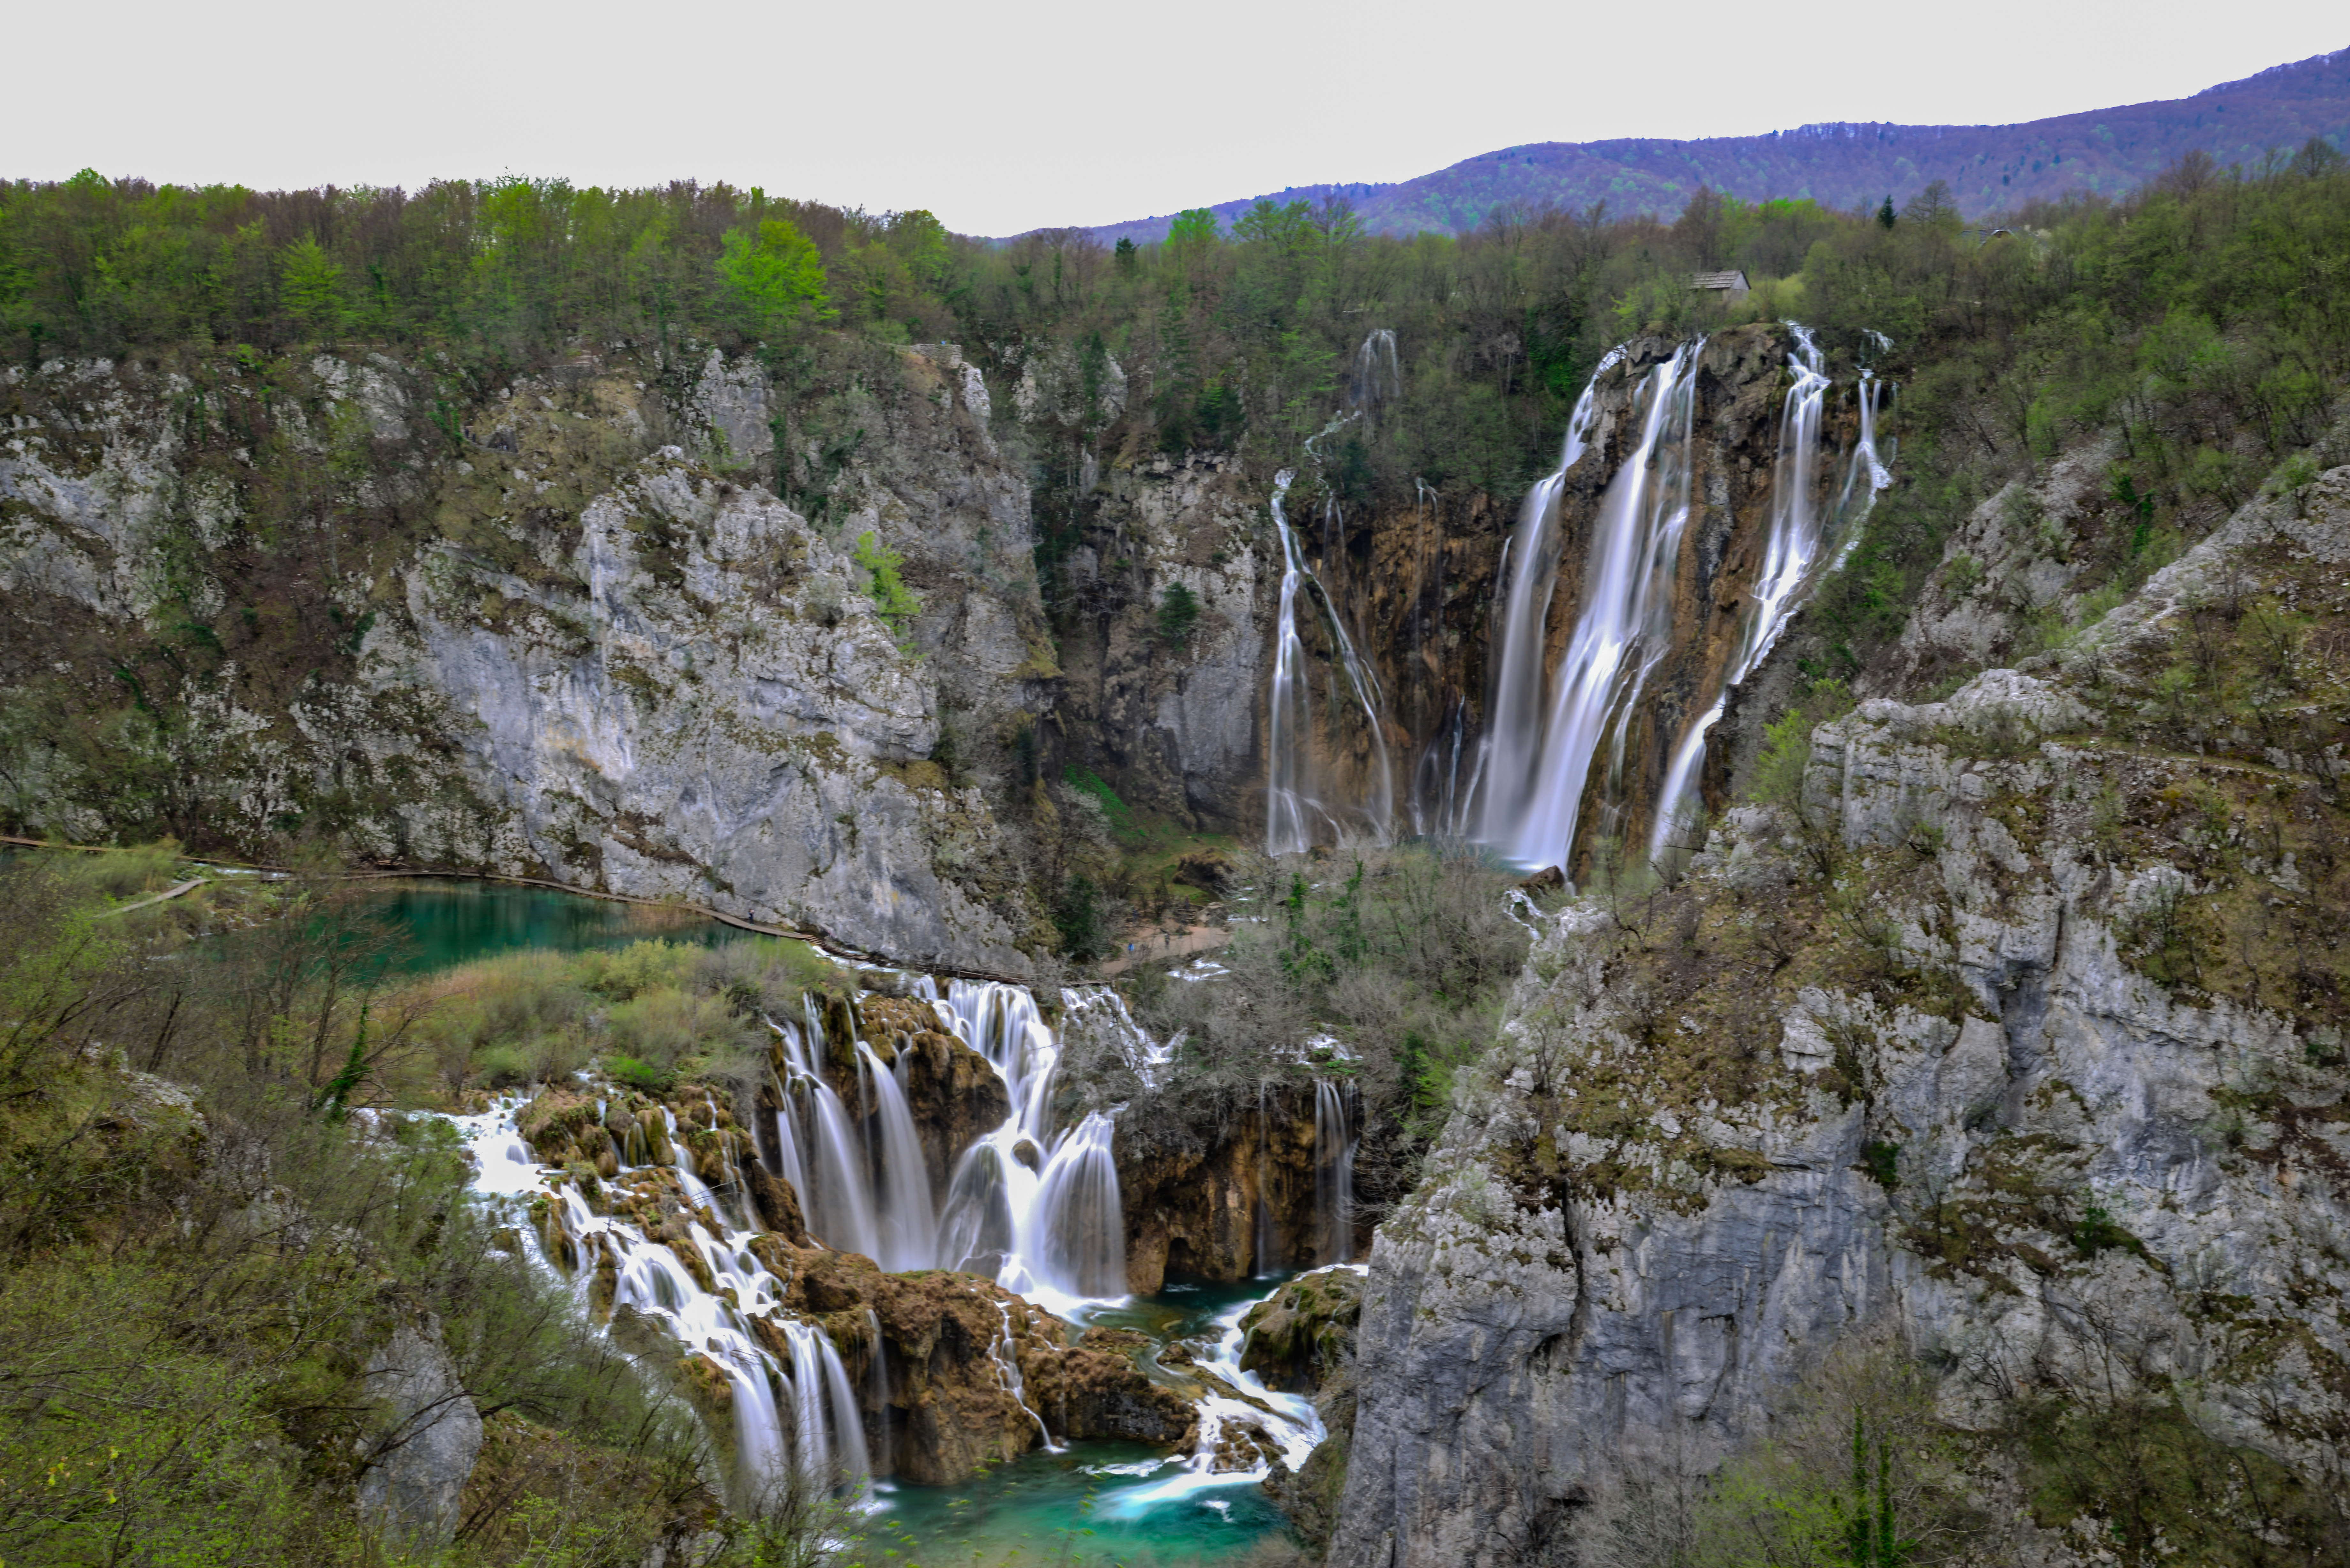 View from Plitvice entrance, Croatia